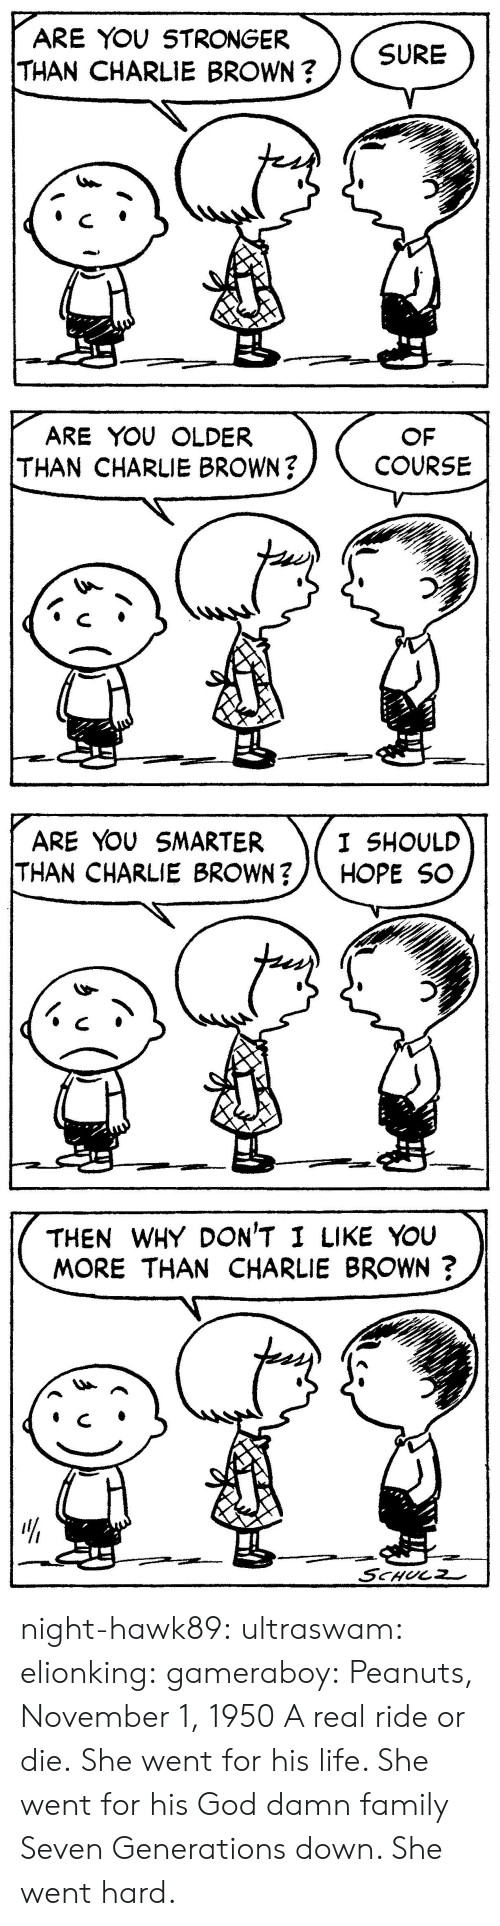 Charlie, Family, and Gif: ARE YOU STRONGER  THAN CHARLIE BROWN?  SURE   ARE YOU OLDER  THAN CHARLIE BROWN?  OF  COURSE   ARE YOU SMARTER  THAN CHARLIE BROWN?/\ HOPE SC  I SHOULD   THEN WHY DON'T I LIKE YouU  MORE THAN CHARLIE BROWN?  リ  4  せー night-hawk89: ultraswam:  elionking:  gameraboy:  Peanuts, November 1, 1950     A real ride or die.   She went for his life. She went for his God damn family Seven Generations down. She went hard.